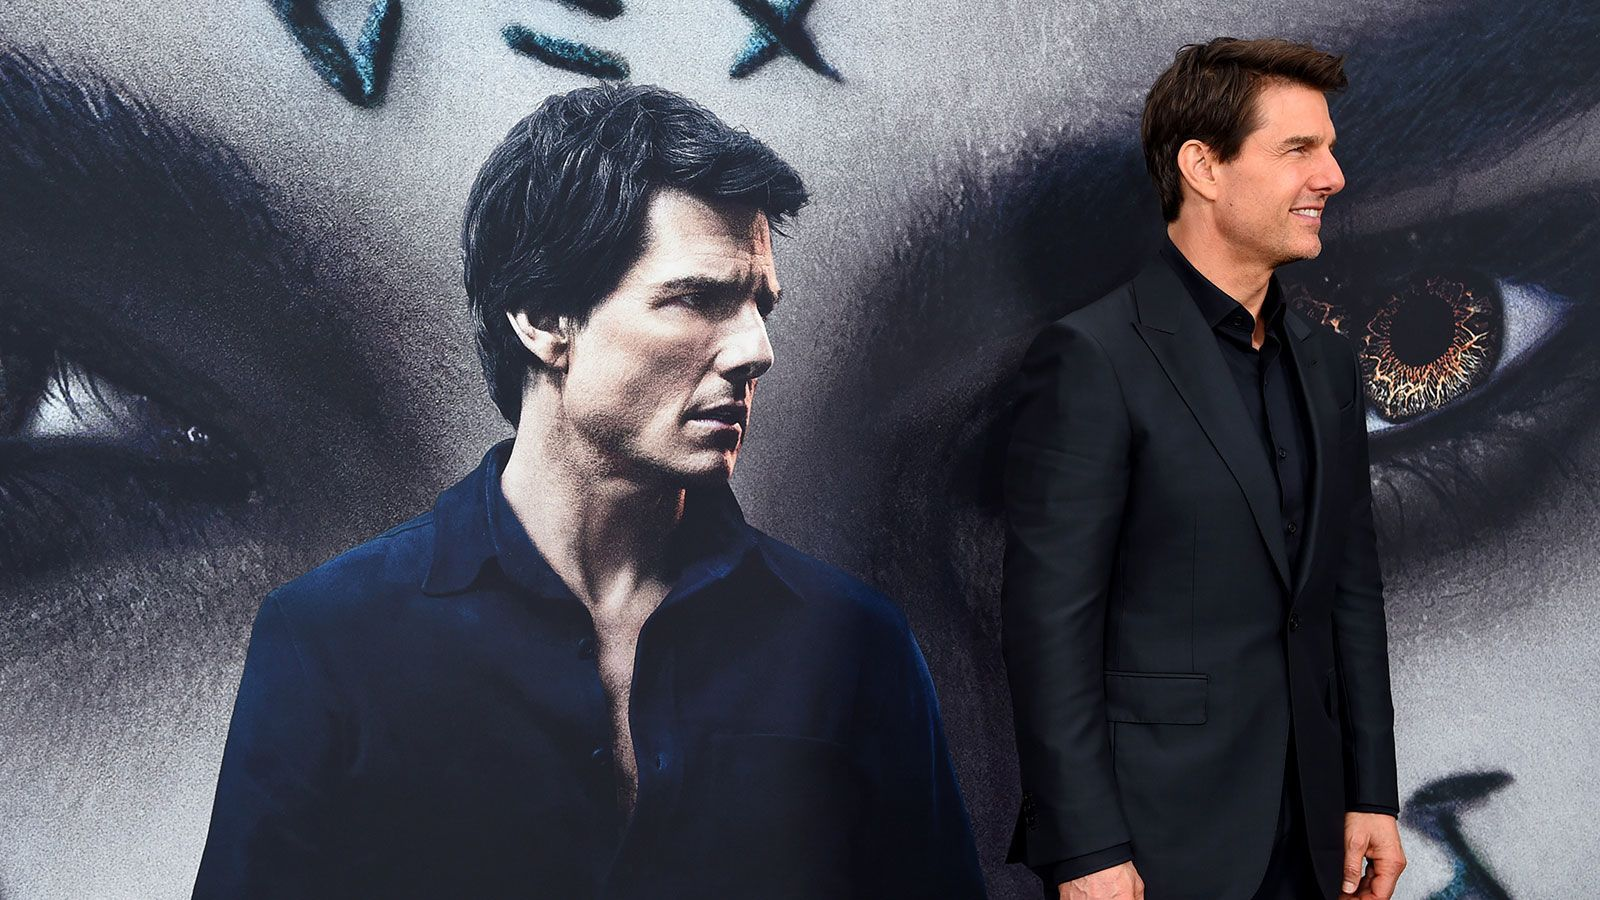 Tom Cruise Micromanaged The Mummy Into Sucking